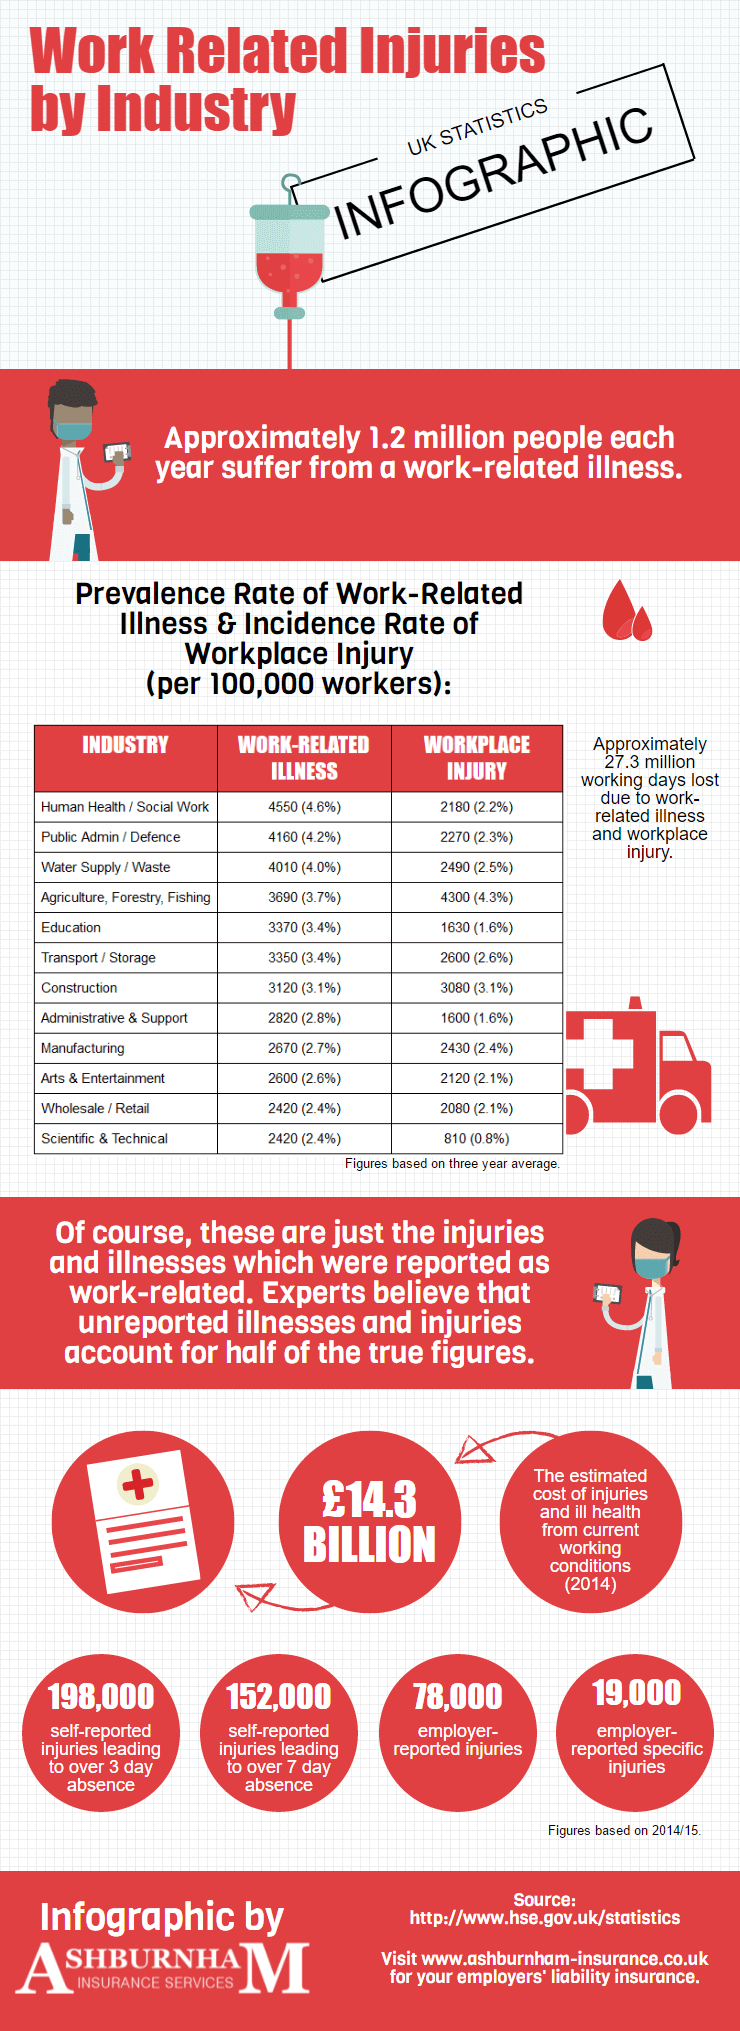 Work Related Illness and Workplace Injuries by Industry - UK Statistics Infographic